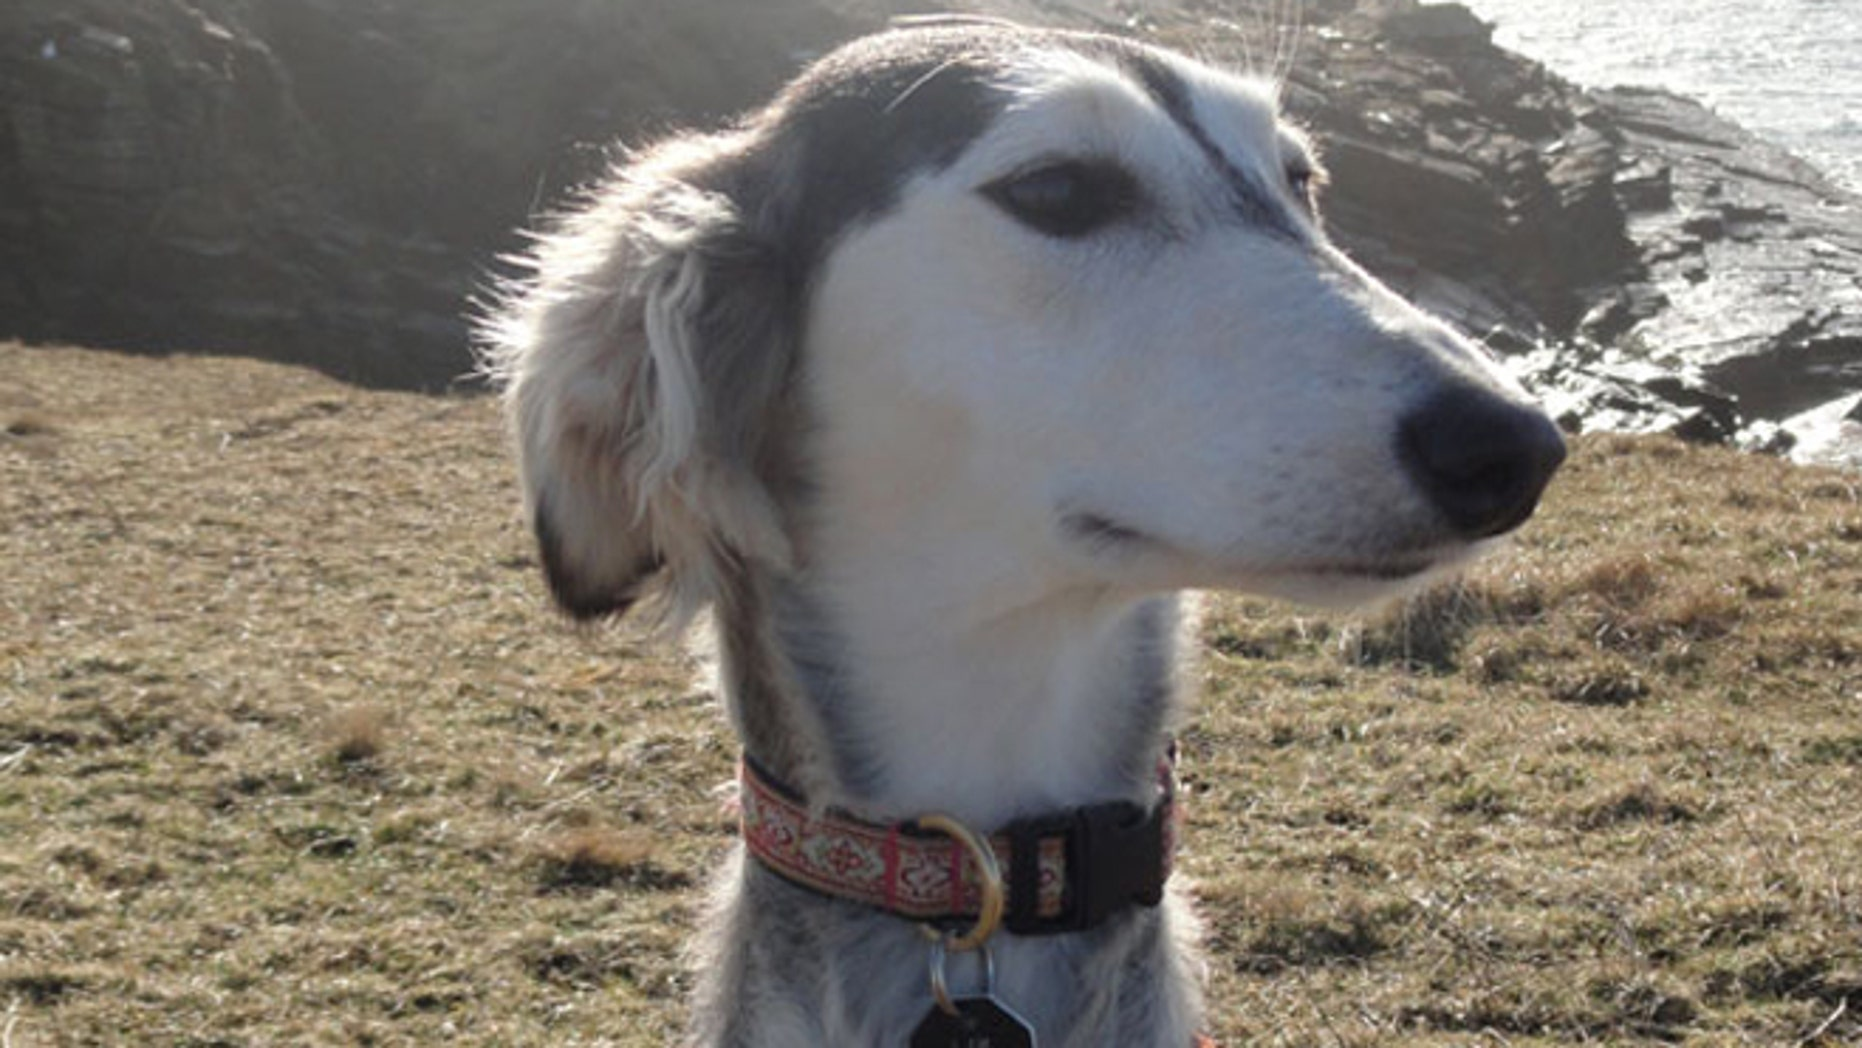 Salukis appear genetically different from other modern dogs because they were geographically isolated and were not part of the 19th century Victorian-initiated Kennel Clubs that blended lineages to create most of the breeds we keep as pets today.